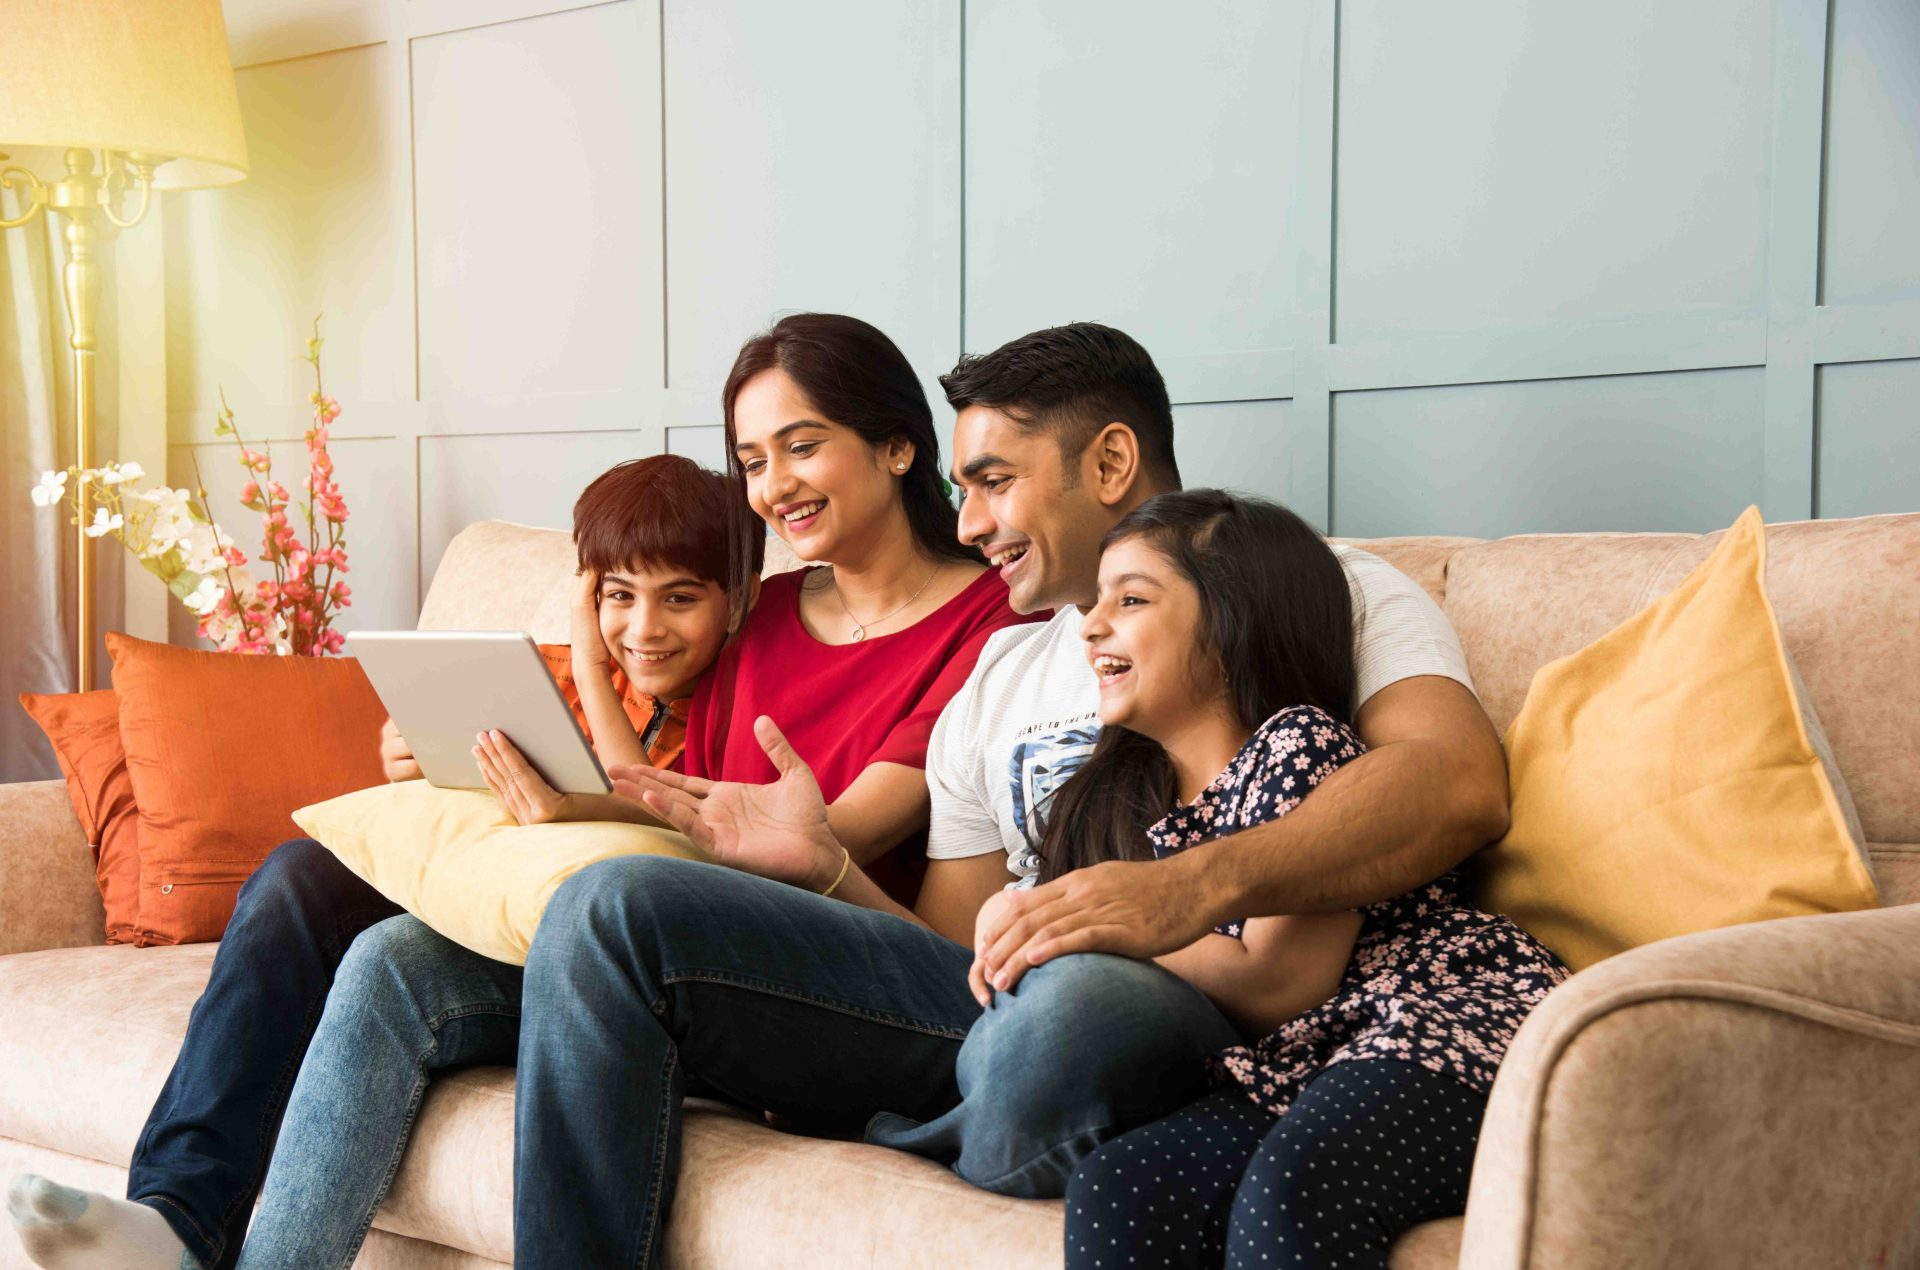 Family sitting together on couch learning about money